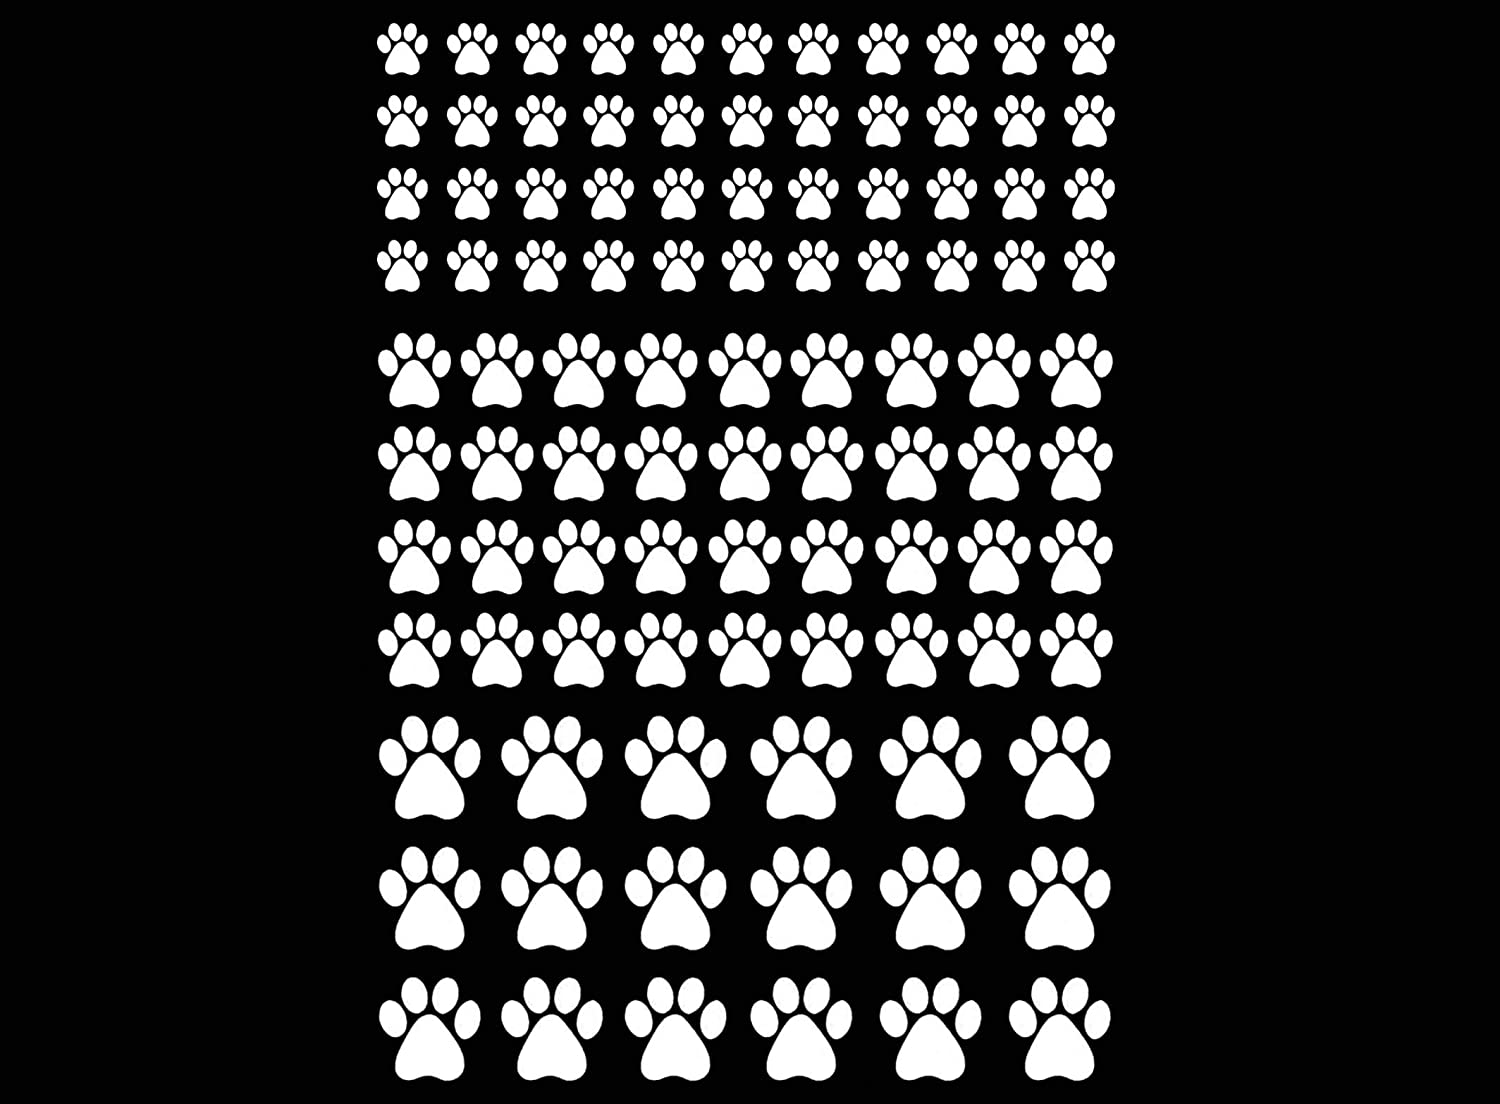 3//8 1//2 White Fused Glass Decals 19CC1123 Must be Fired Tiny Pet Paw Prints 98 pcs 1//4